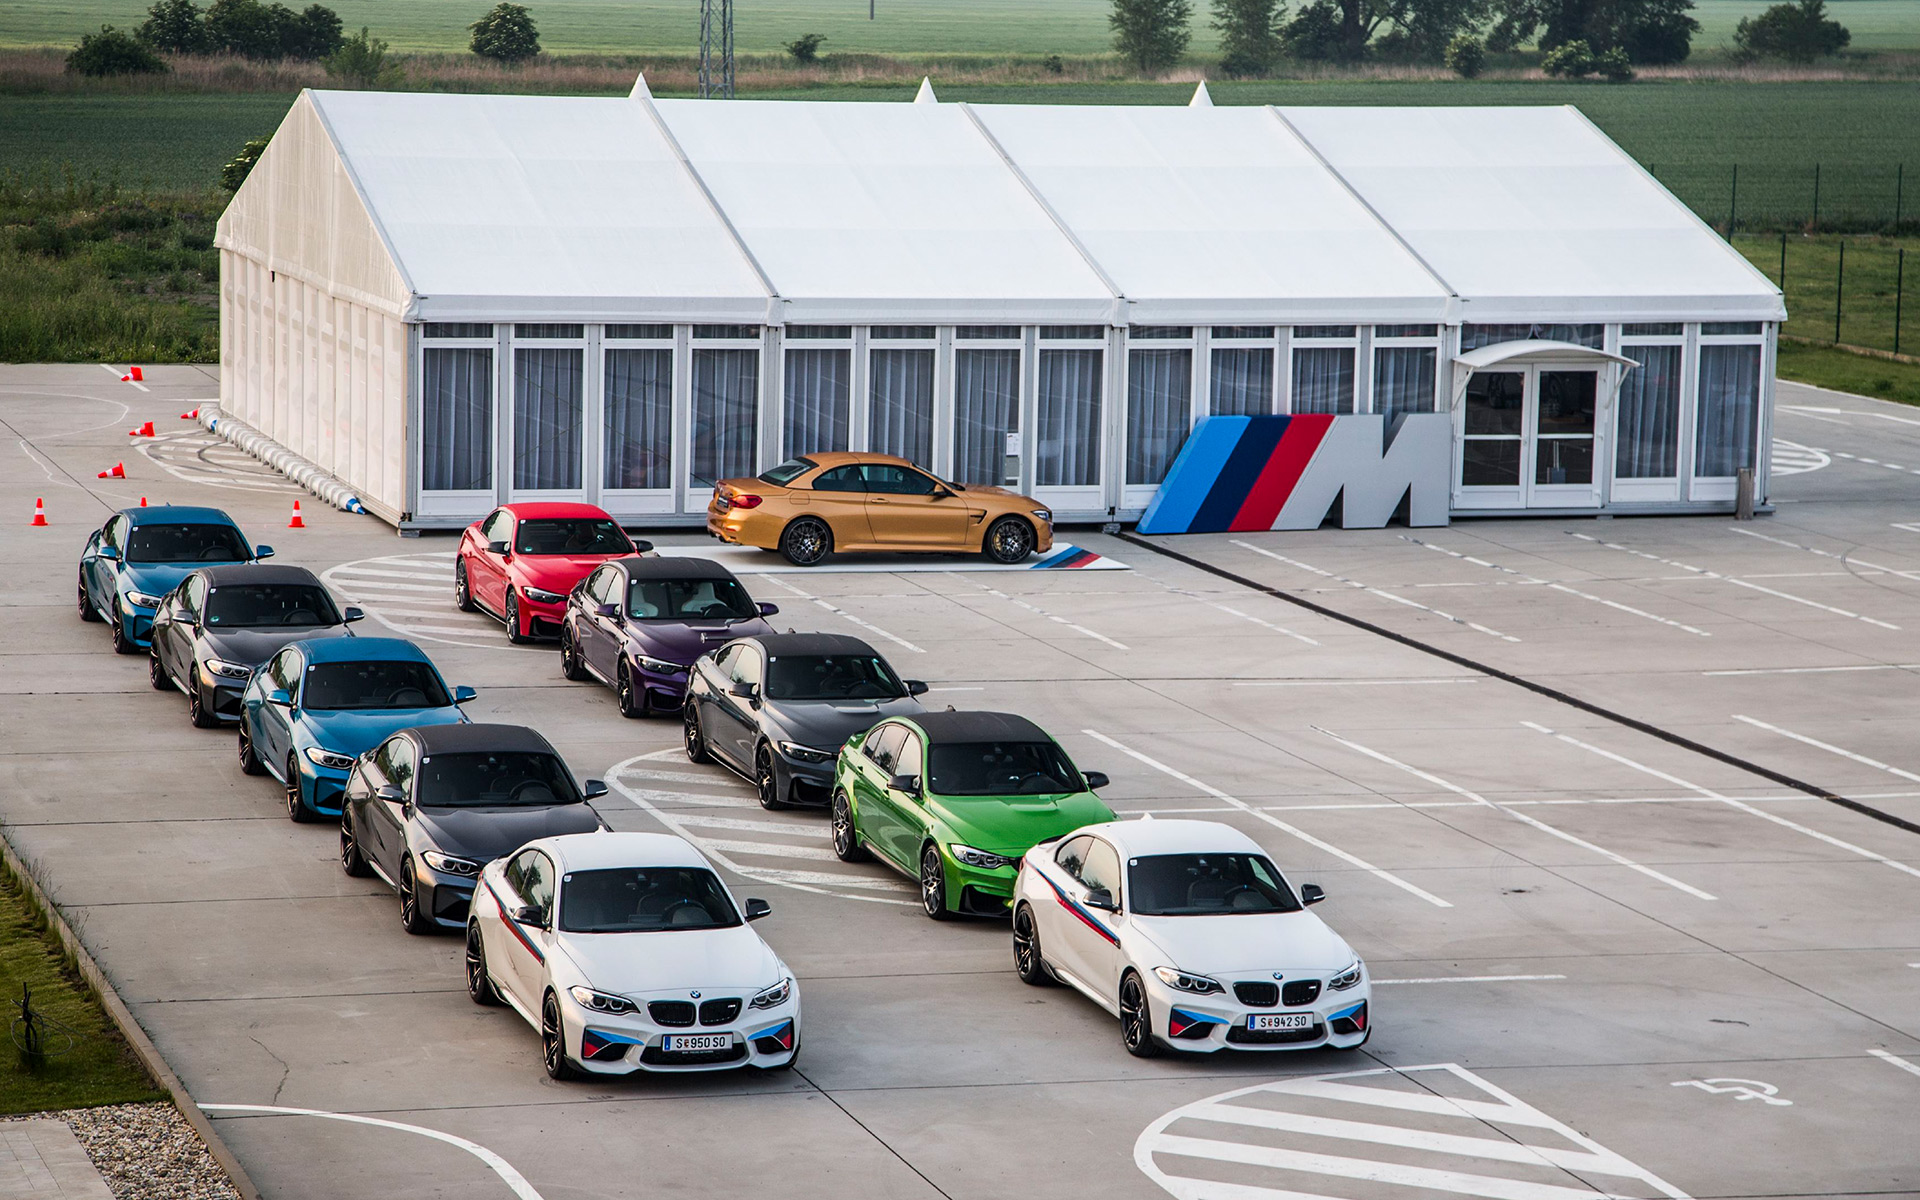 BMW M Drive Tour, M2 Coupe, M3 Sedan, M4 Coupé